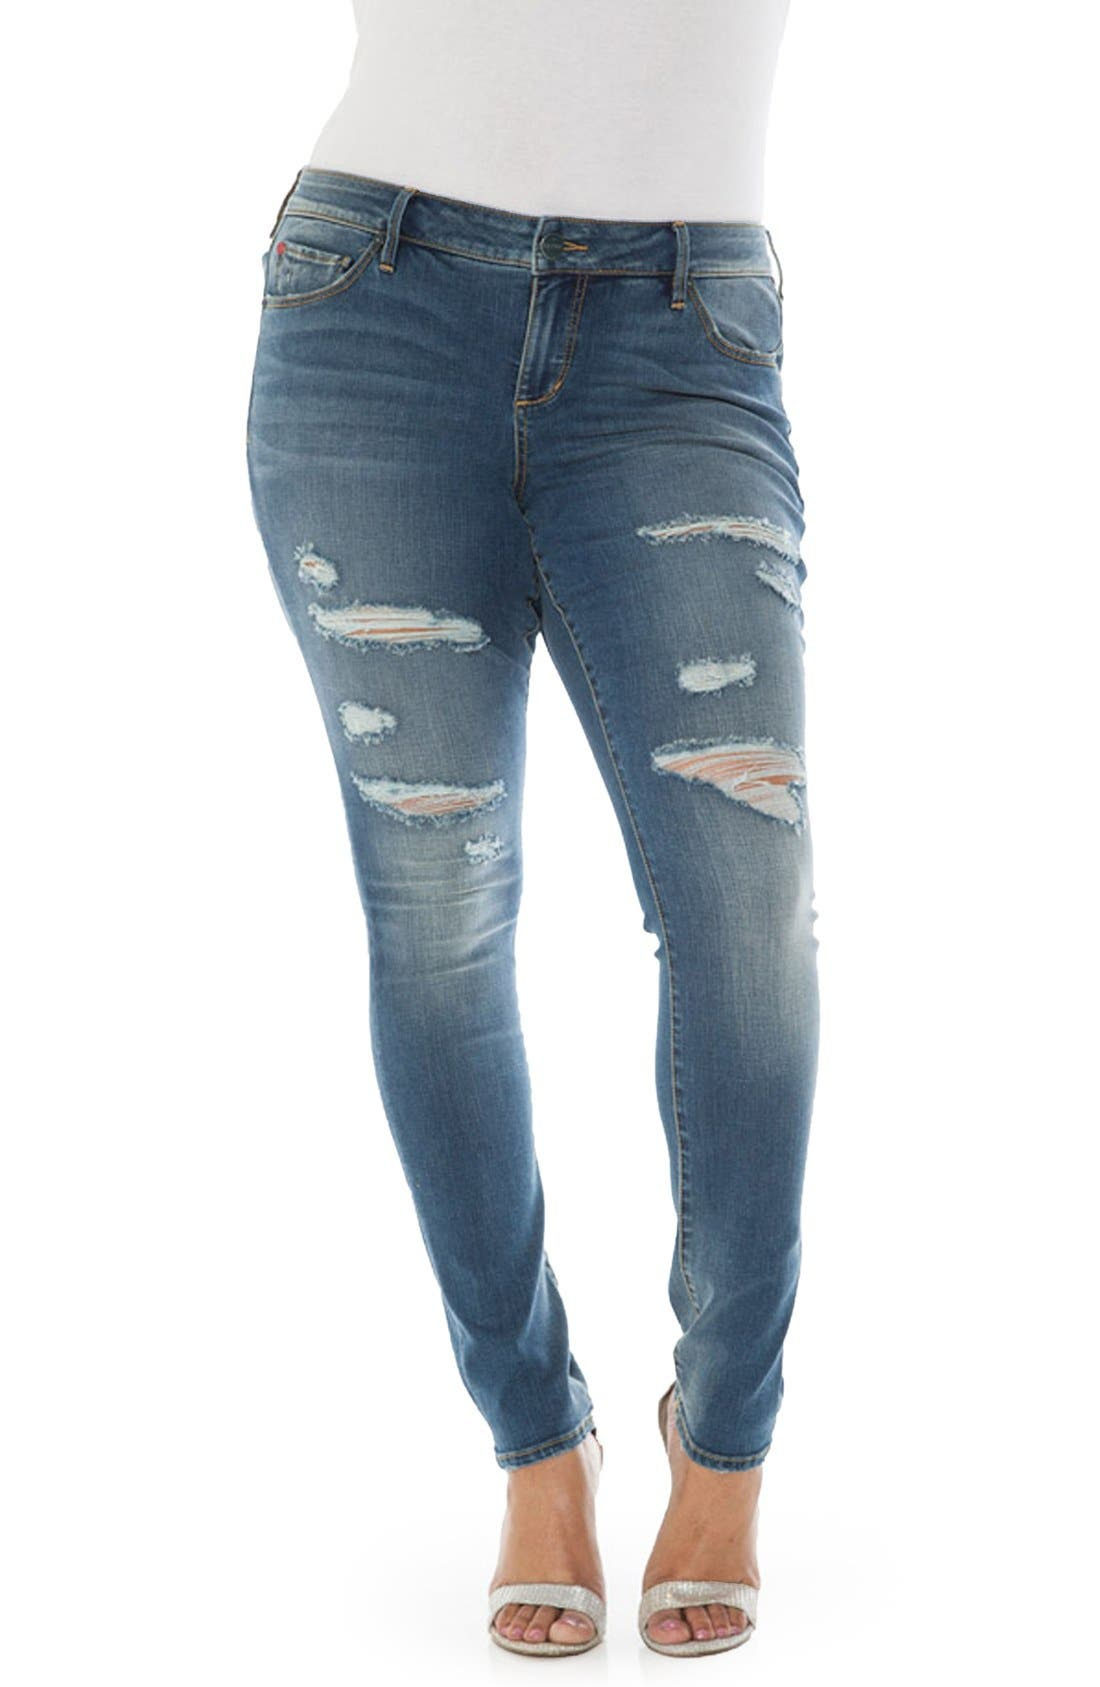 Alternate Image 1 Selected - SLINK Jeans Ripped Stretch Skinny Jeans (Plus Size)